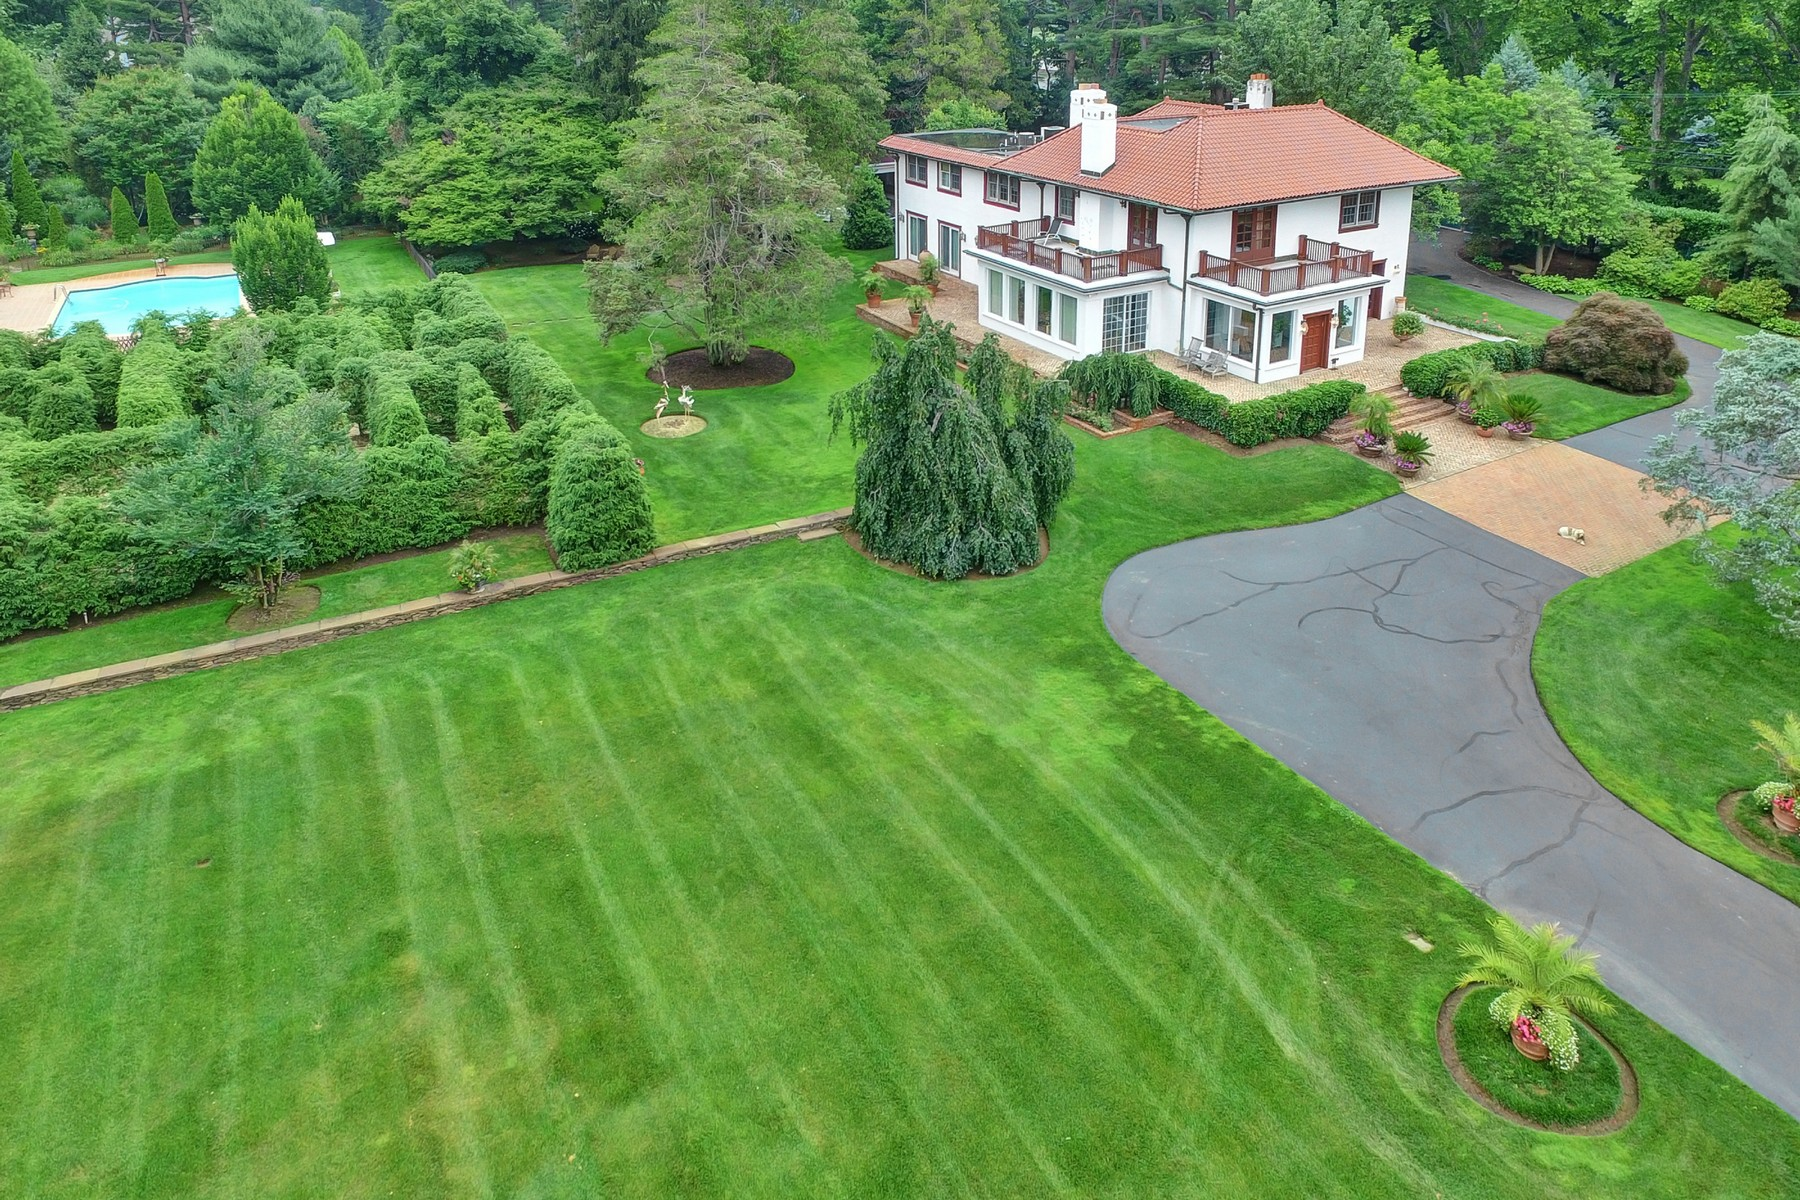 Single Family Home for Sale at Enchanting Mediterranean Style Estate 427 Navesink River Road Middletown, New Jersey 07748 United States